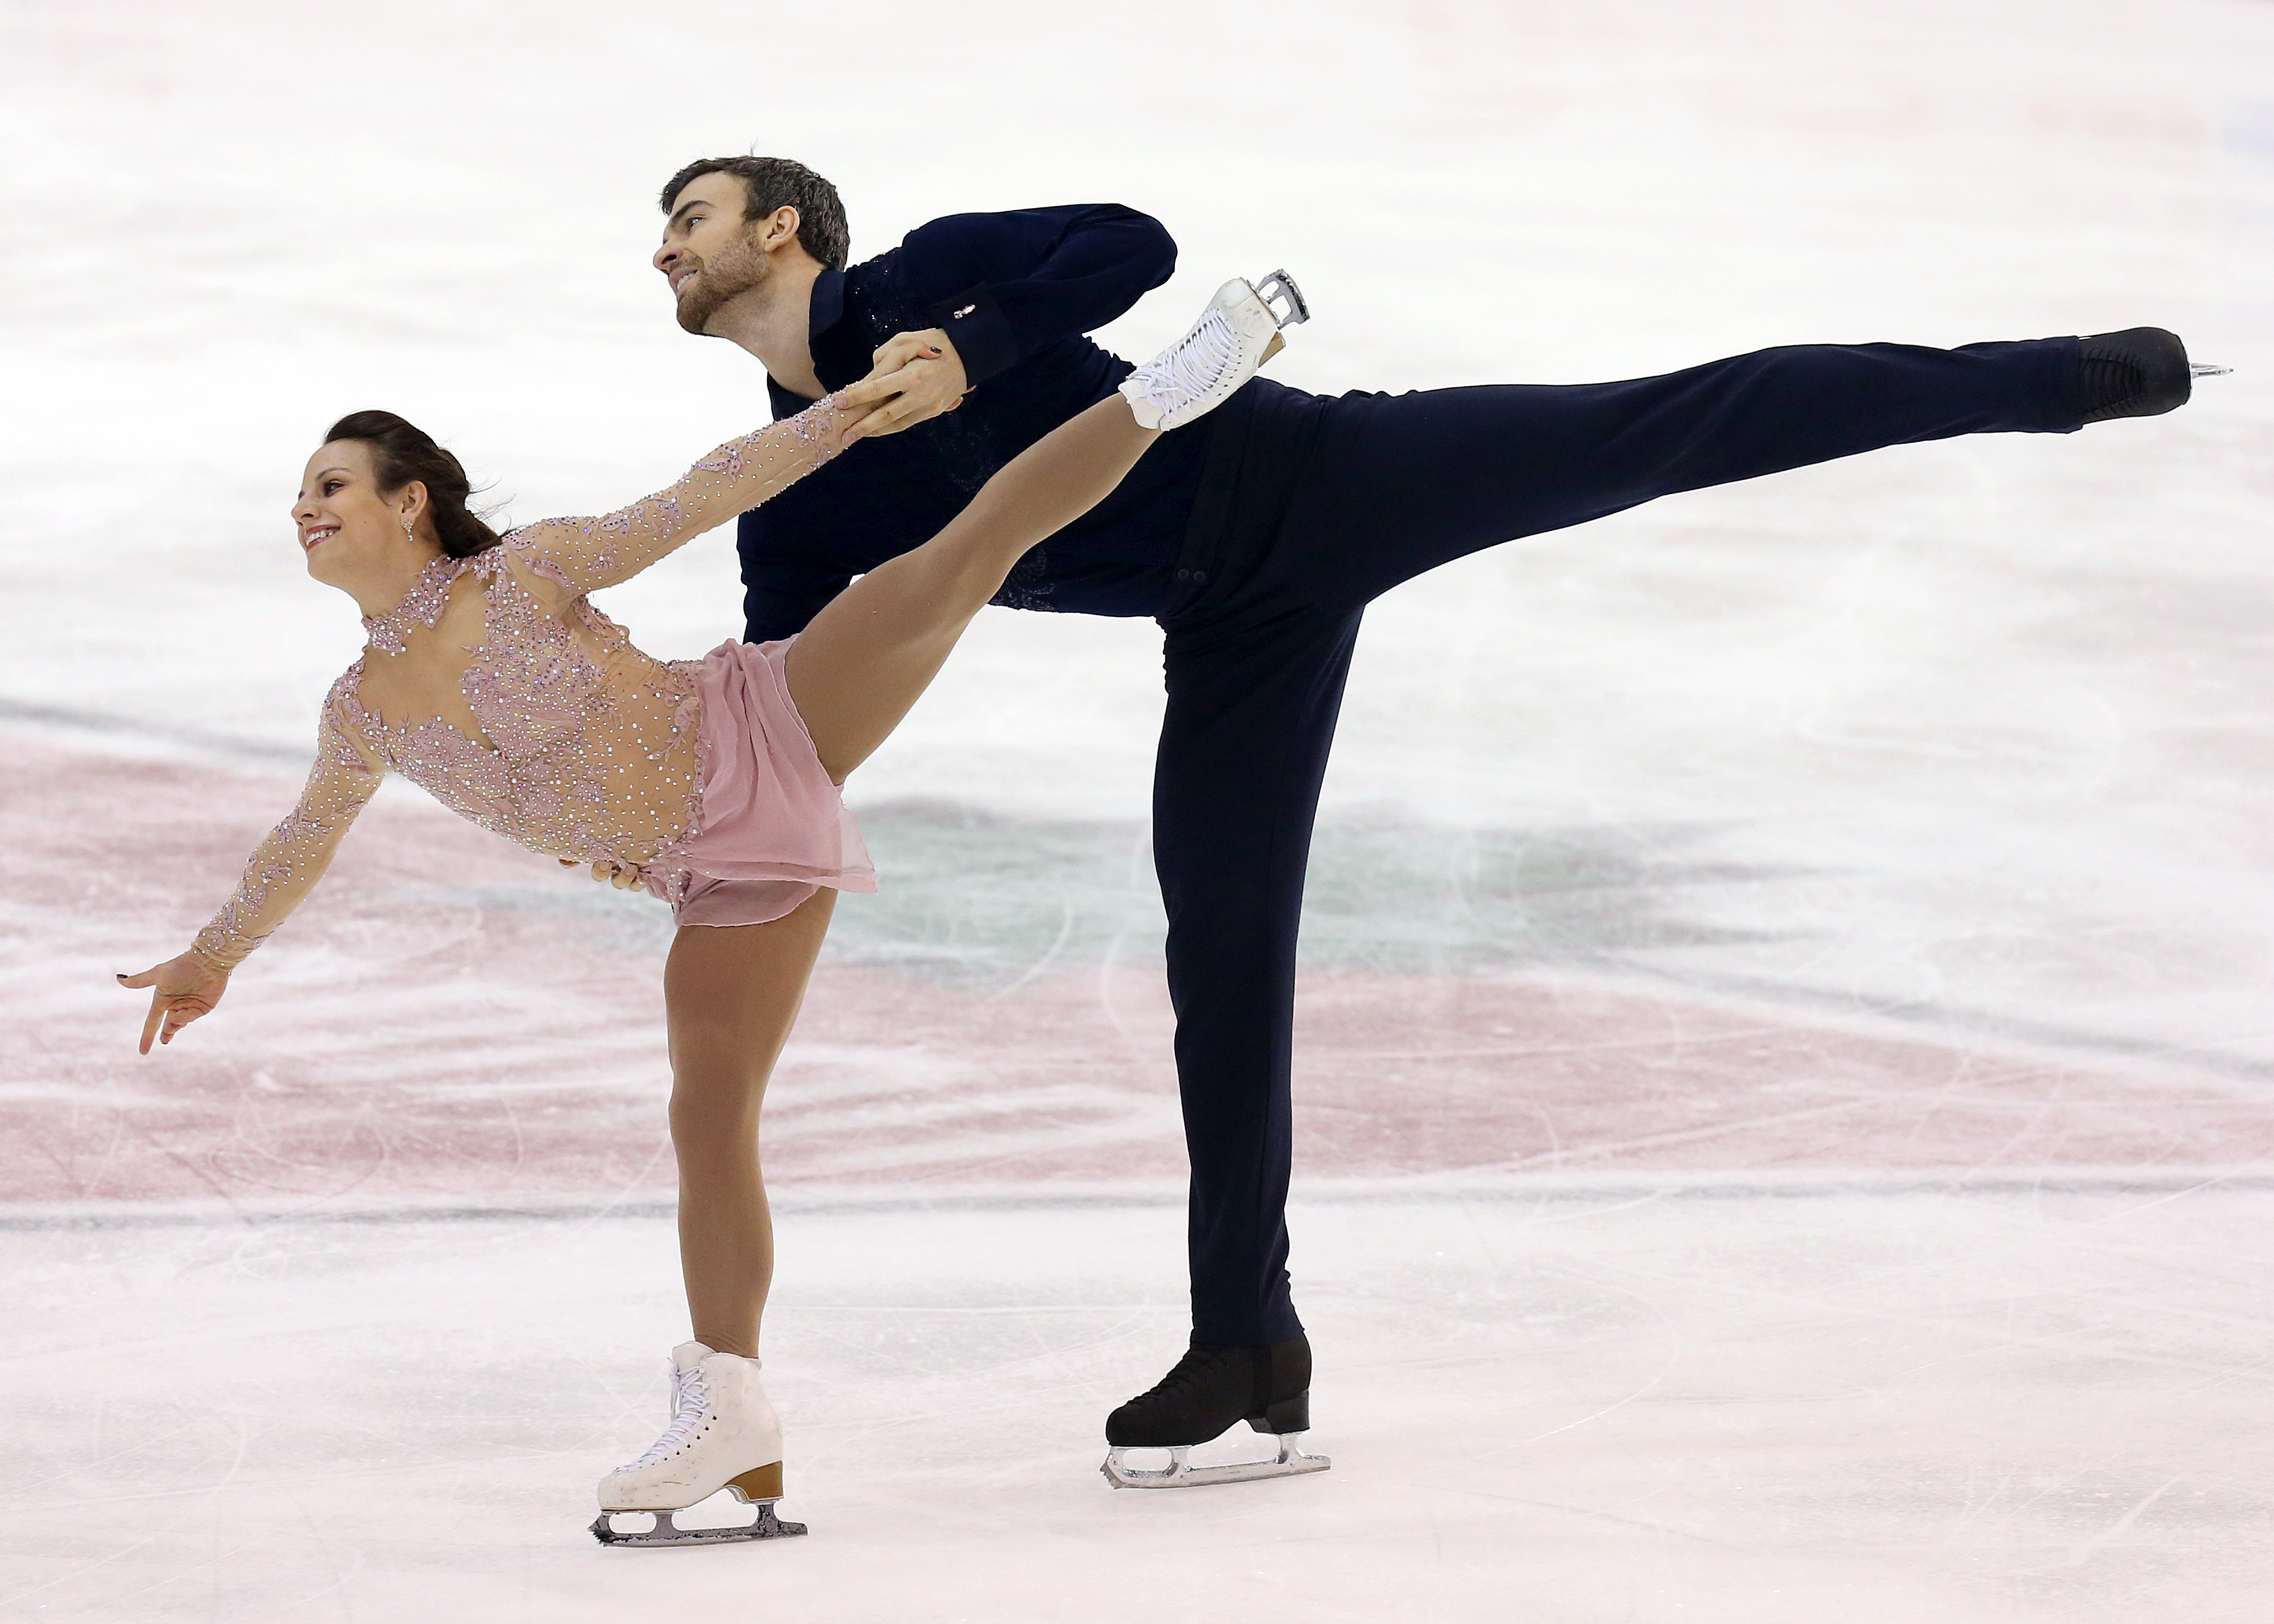 Meagan Duhamel and Eric Radford compete in the pairs free skate at the Canadian Tire National Skating Championships, January, 21, 2017 PHOTO: Greg Kolz